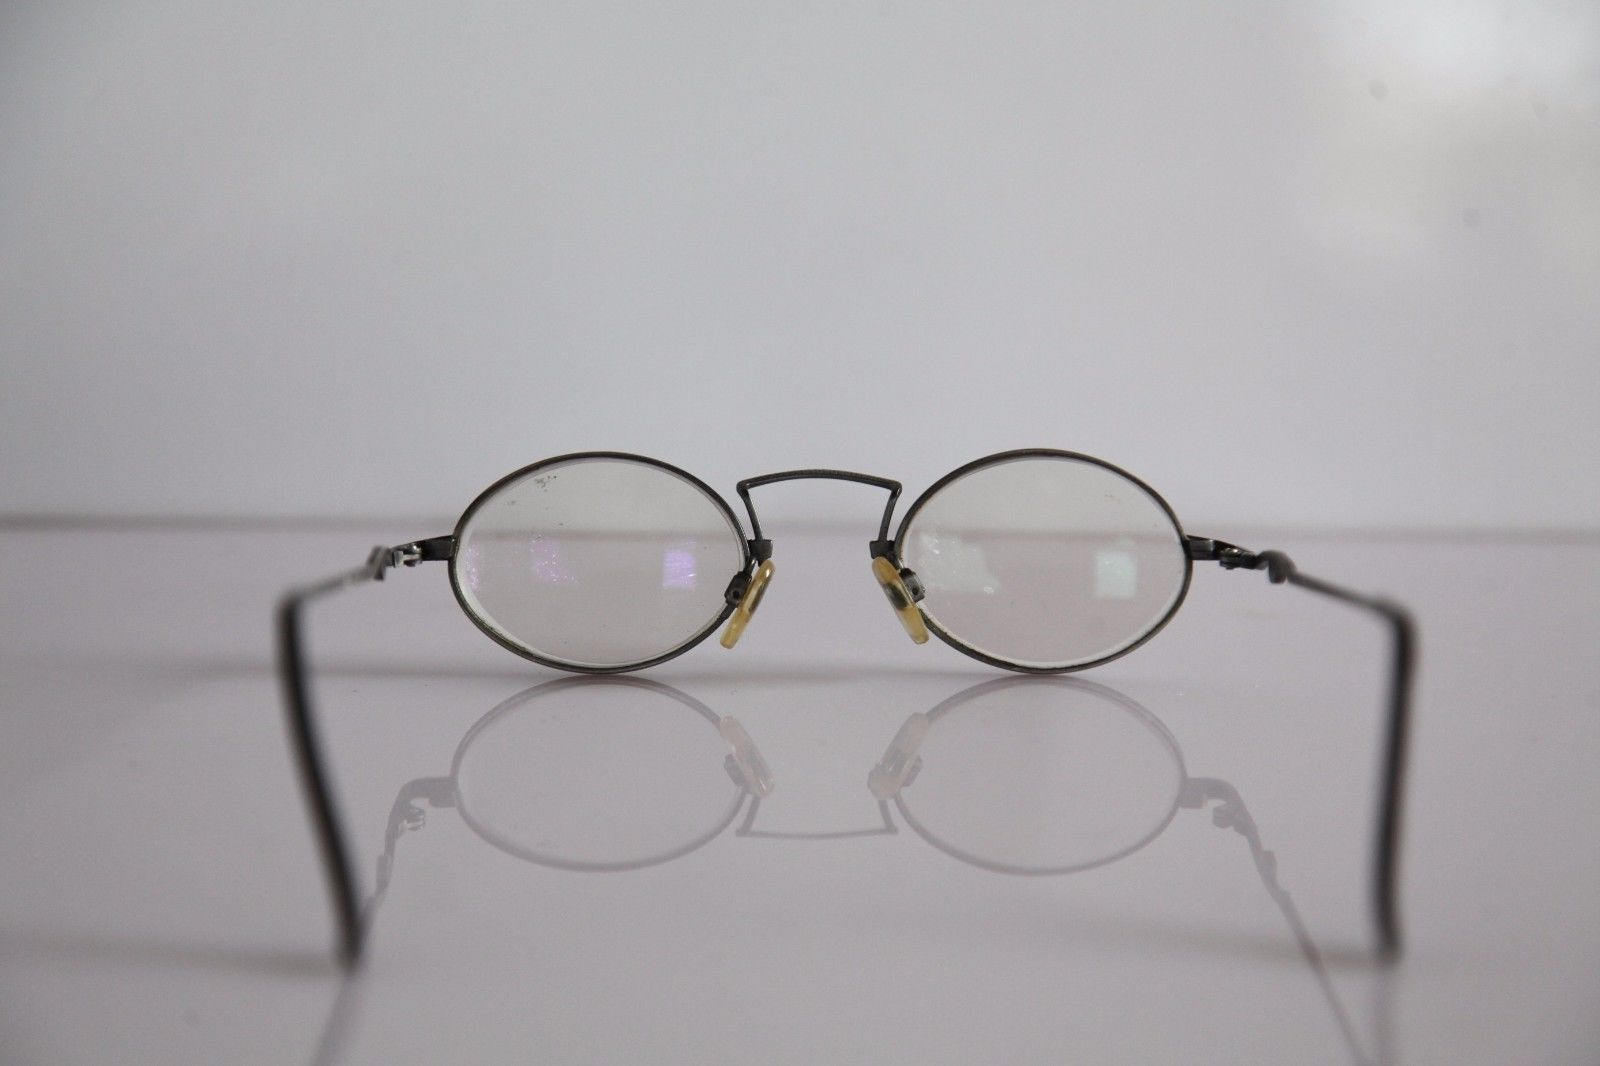 CLAUDIO P. Eyewear, Silver Frame, RX-Able Prescription lenses. Made in Italy image 8